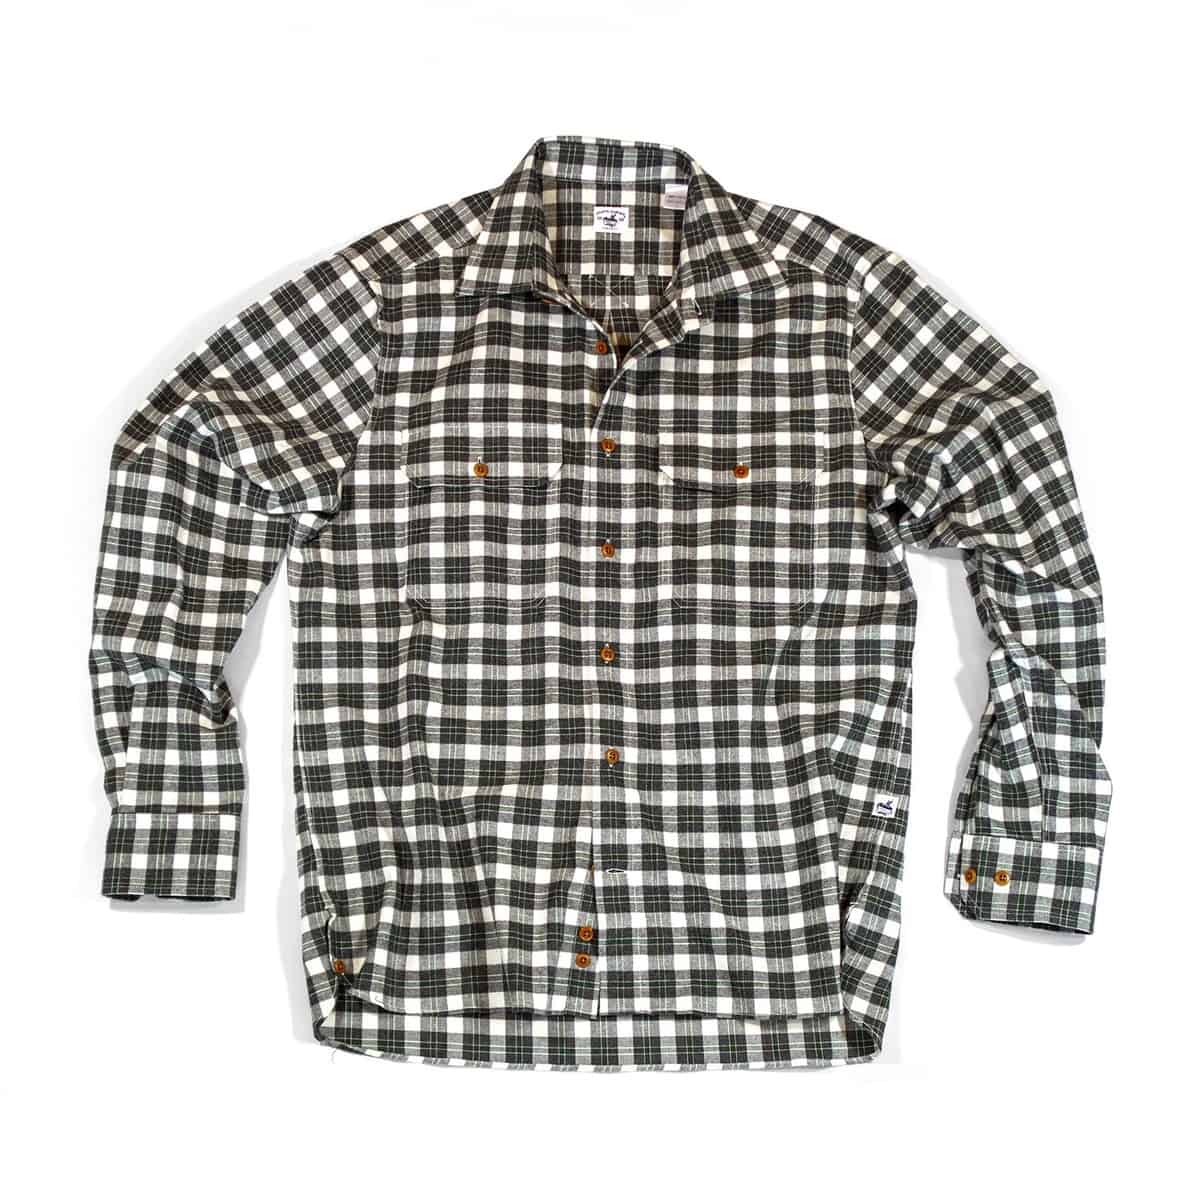 Buy The Bayman's Flannel Shirt - Brown/Evergreen tick